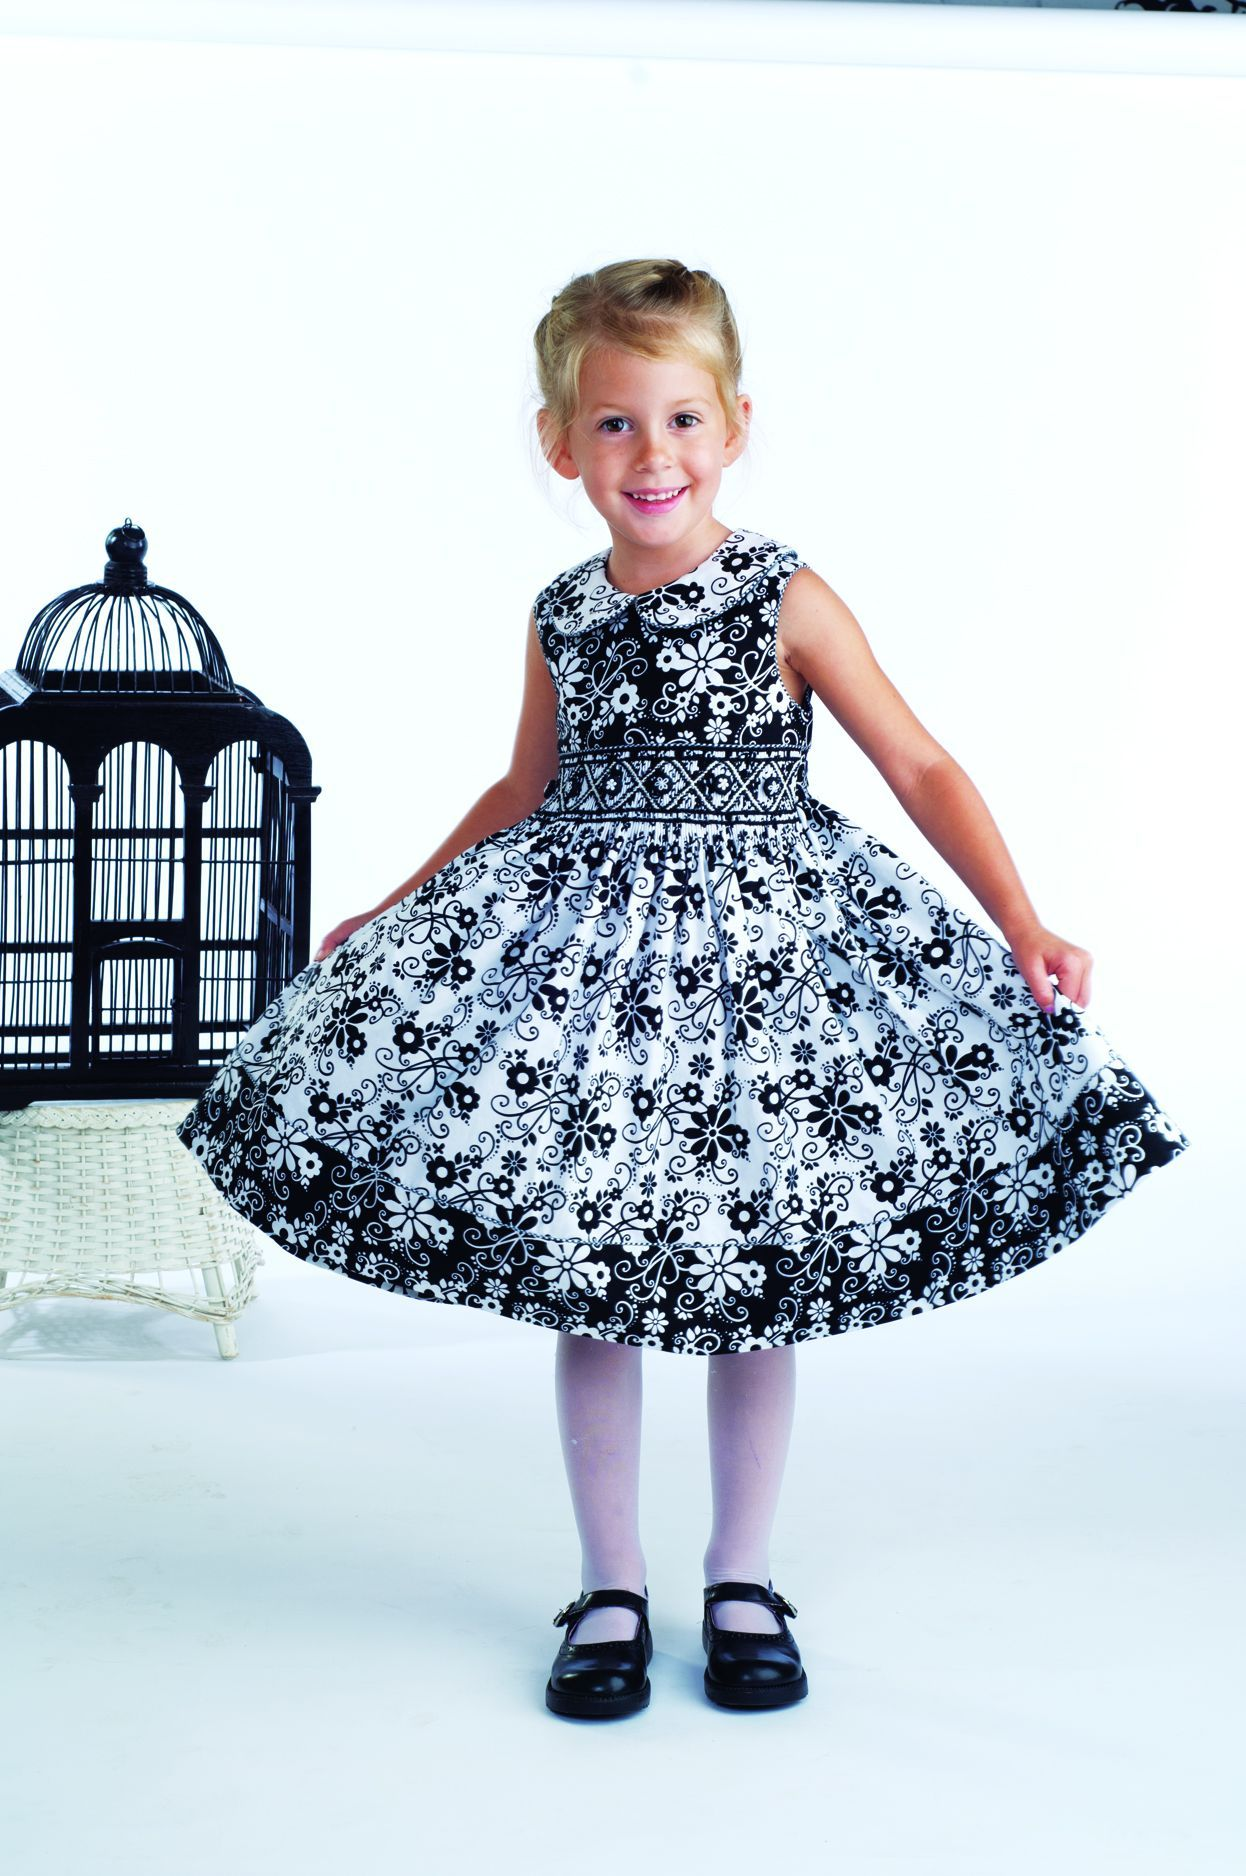 My Bloomin\' Buttons Dress - in the new issue of Sew Beautiful ...